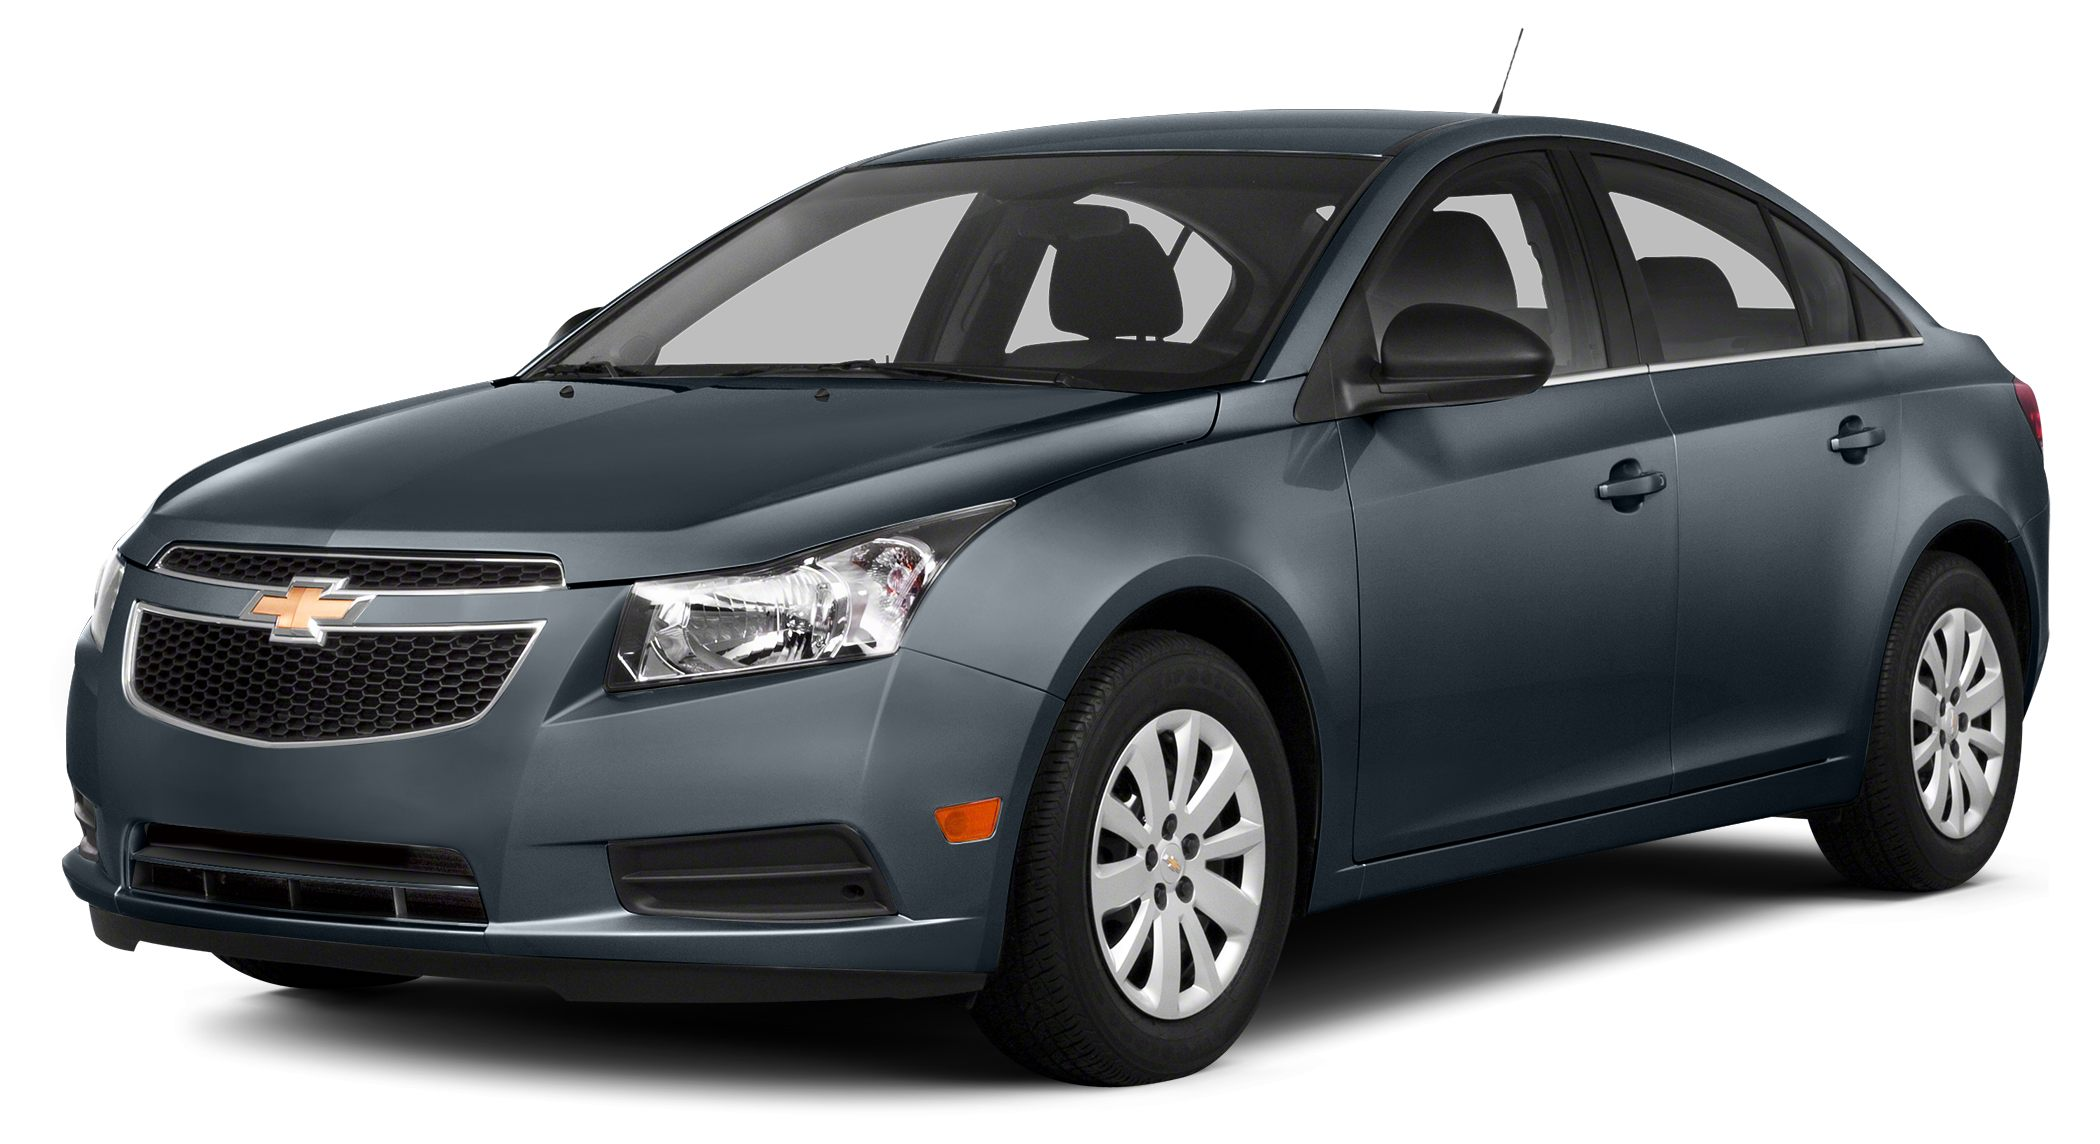 2014 Chevrolet Cruze LS Clean Carfax - GM Certified - Air Conditioning - CD player - Power windows